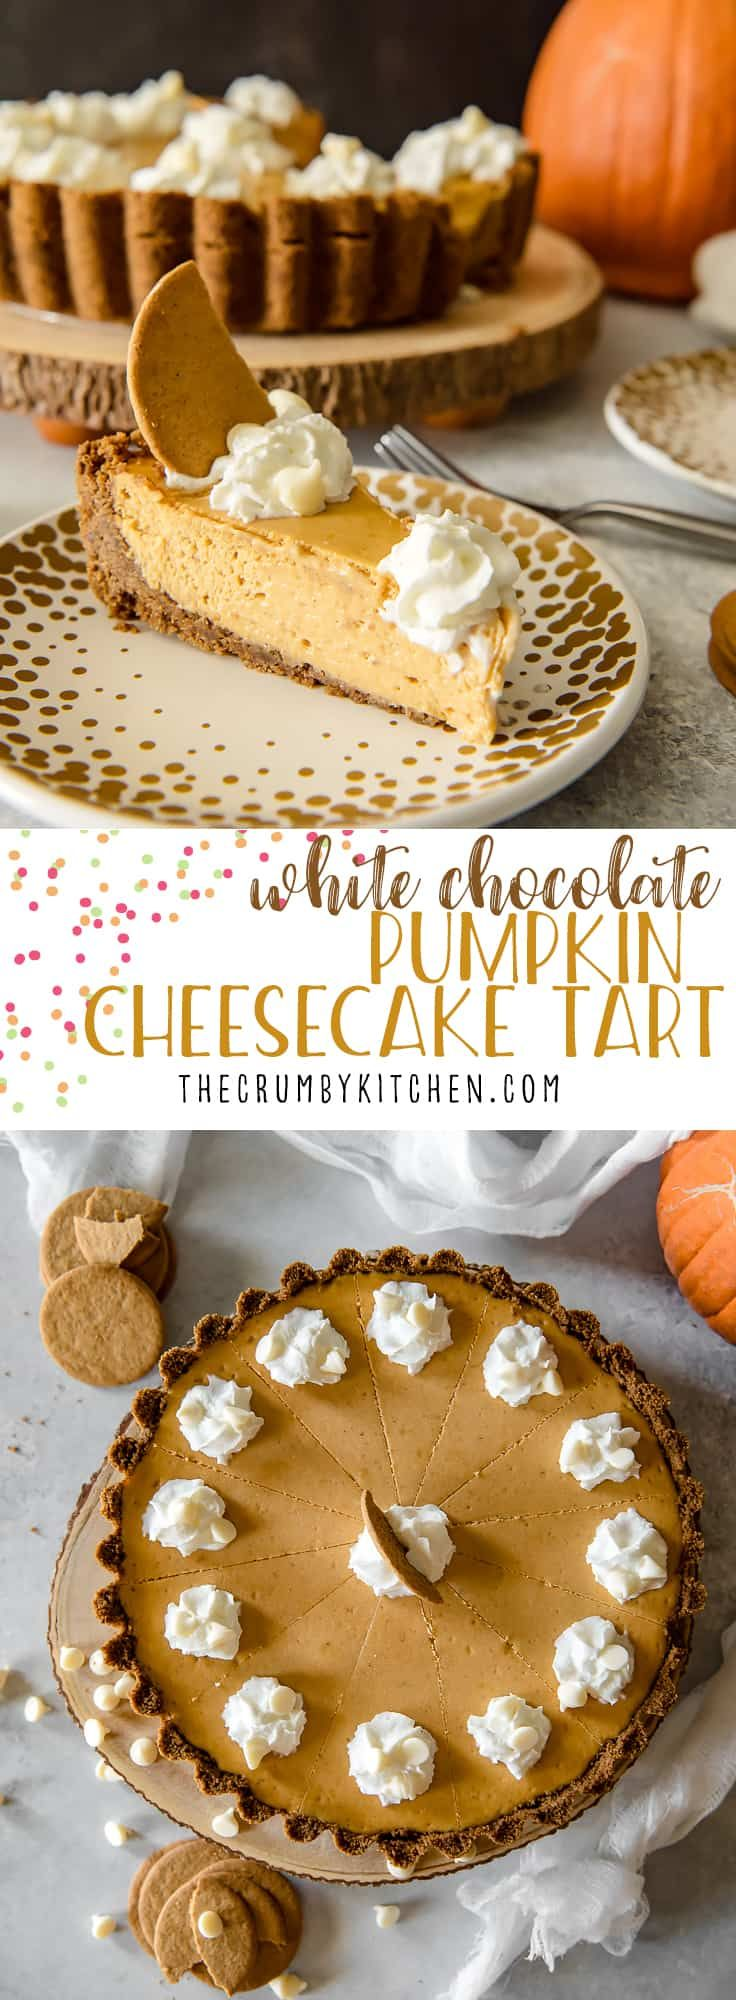 Present That Traditional Pumpkin Pie In A More Festive Way With This White Chocol Chocolate Pumpkin Tart Pumpkin Cheesecake Recipe Easy Pumpkin Recipes Dessert